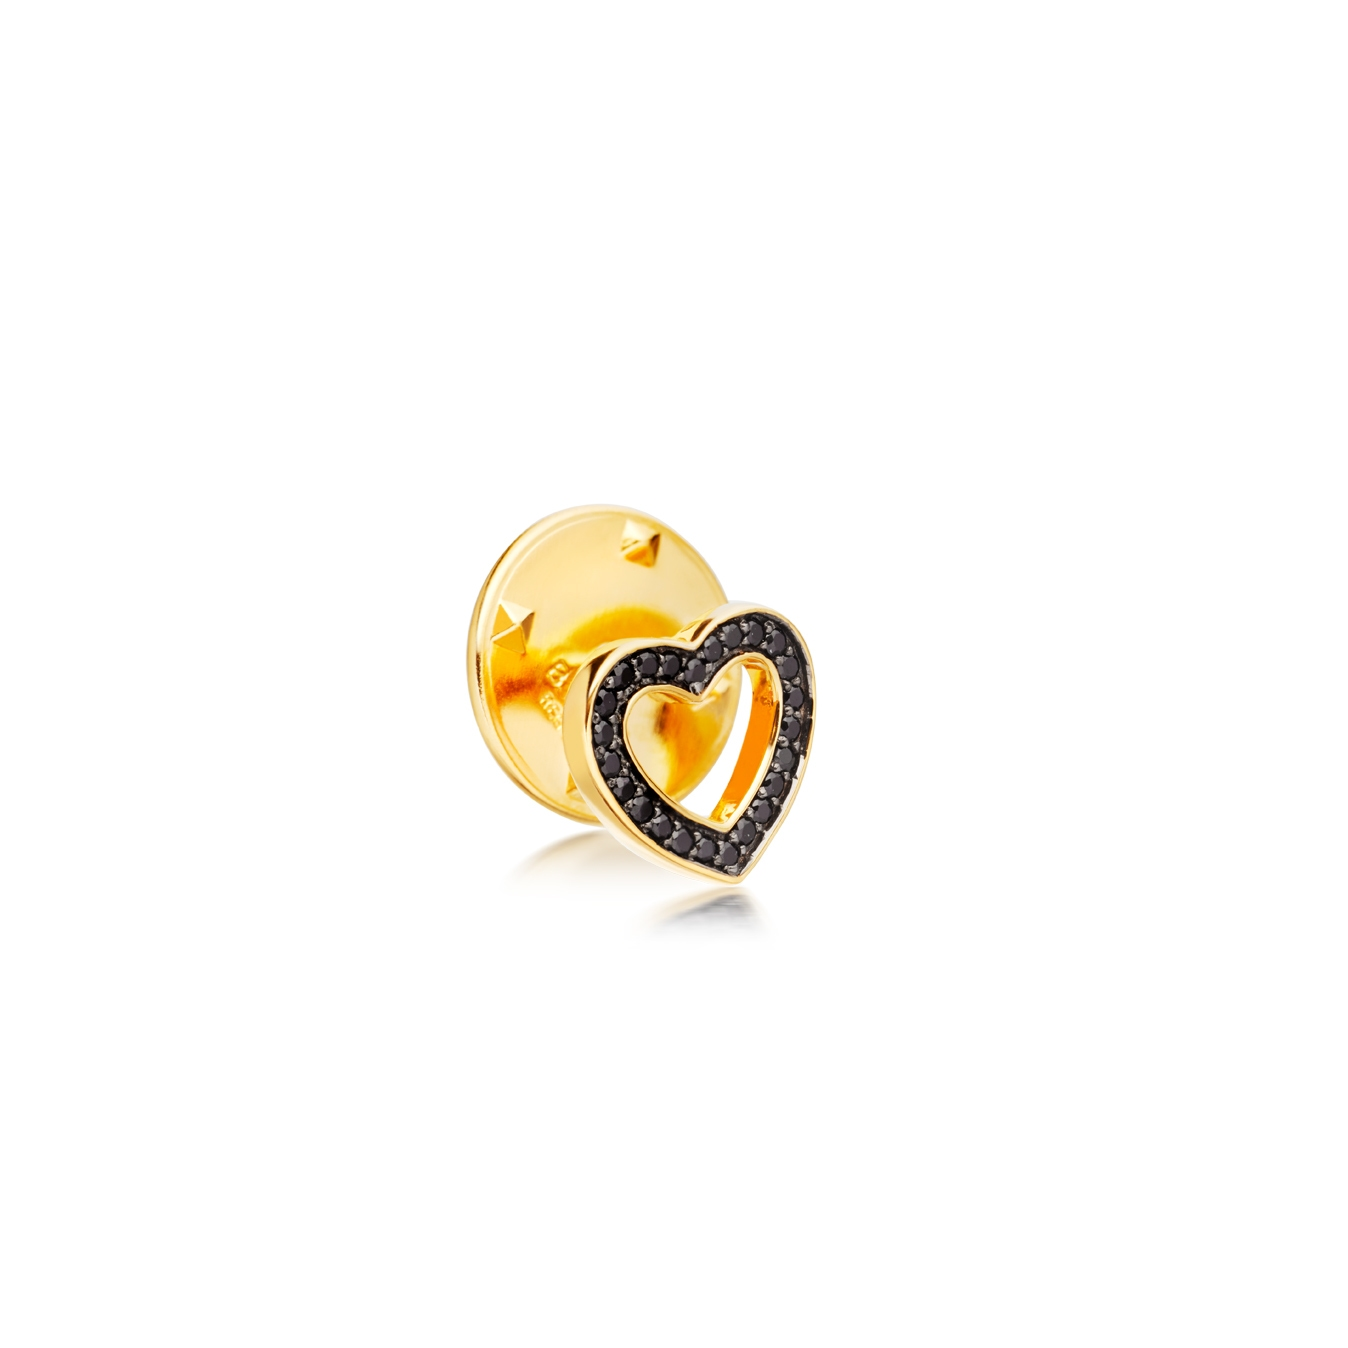 Black Spinel Heart Biography Pin